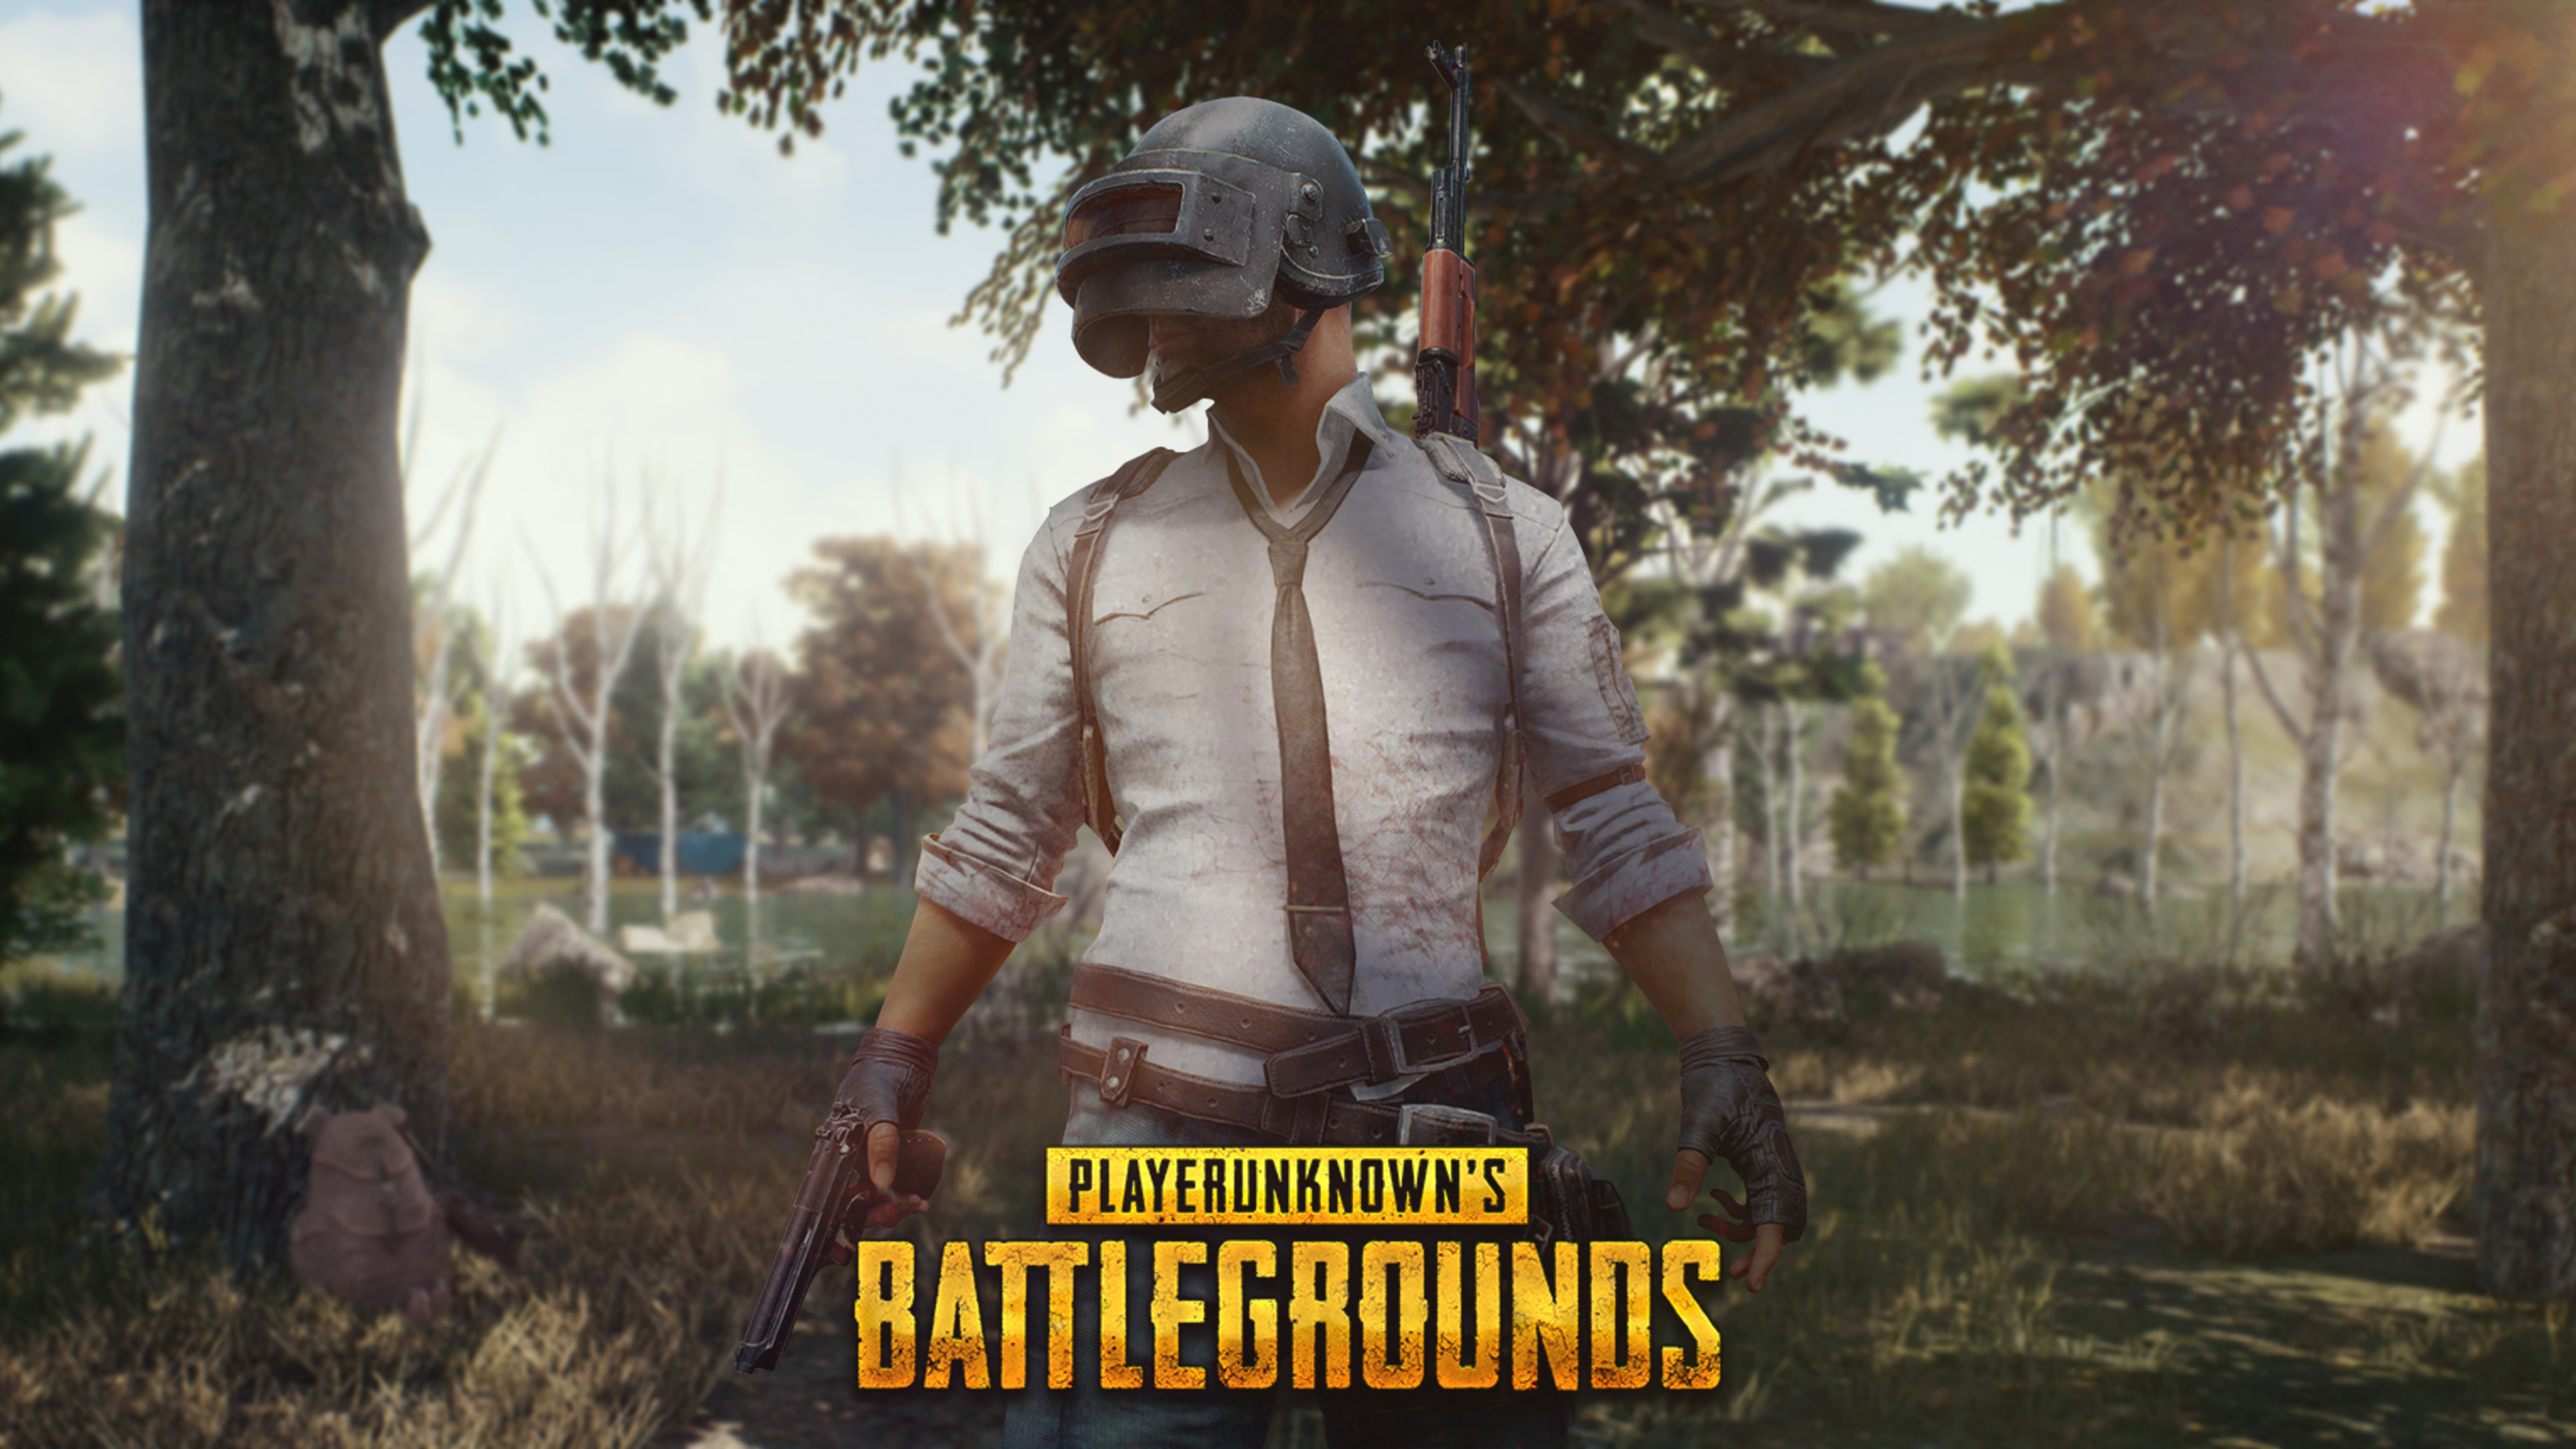 3840x2160 Pubg Game Helmet Guy 4k 4k Hd 4k Wallpapers: Pubg Mobile Helmet Guy 4k Pubg Wallpapers, Playerunknowns